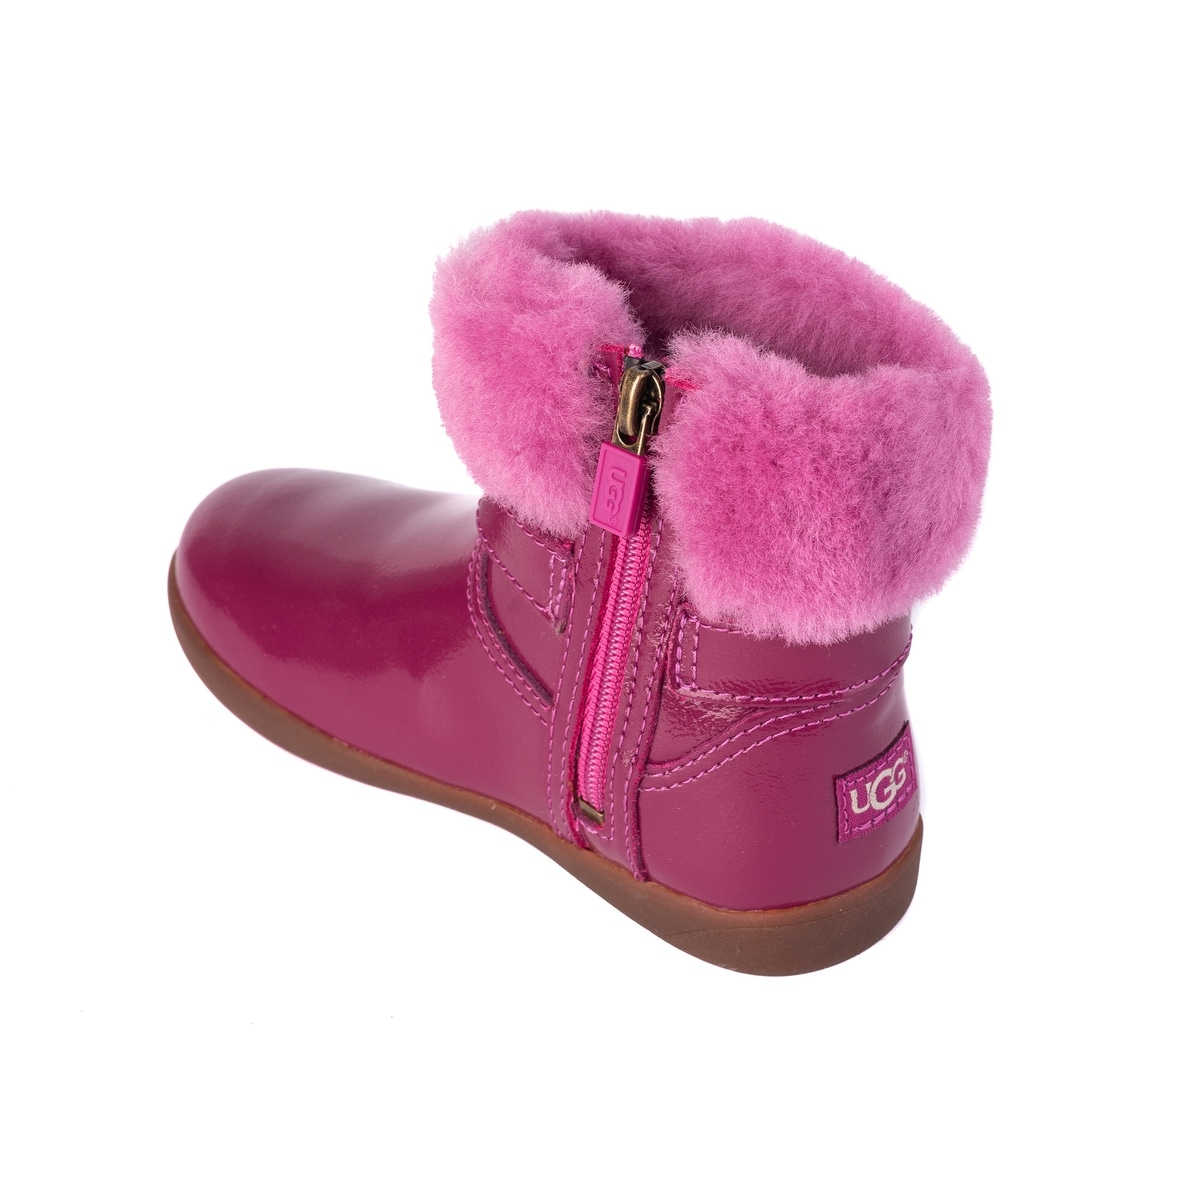 afcd30fee3a UGG Toddler Girls Gemma Patent Leather Cuff Boots Size US10~RTL$75